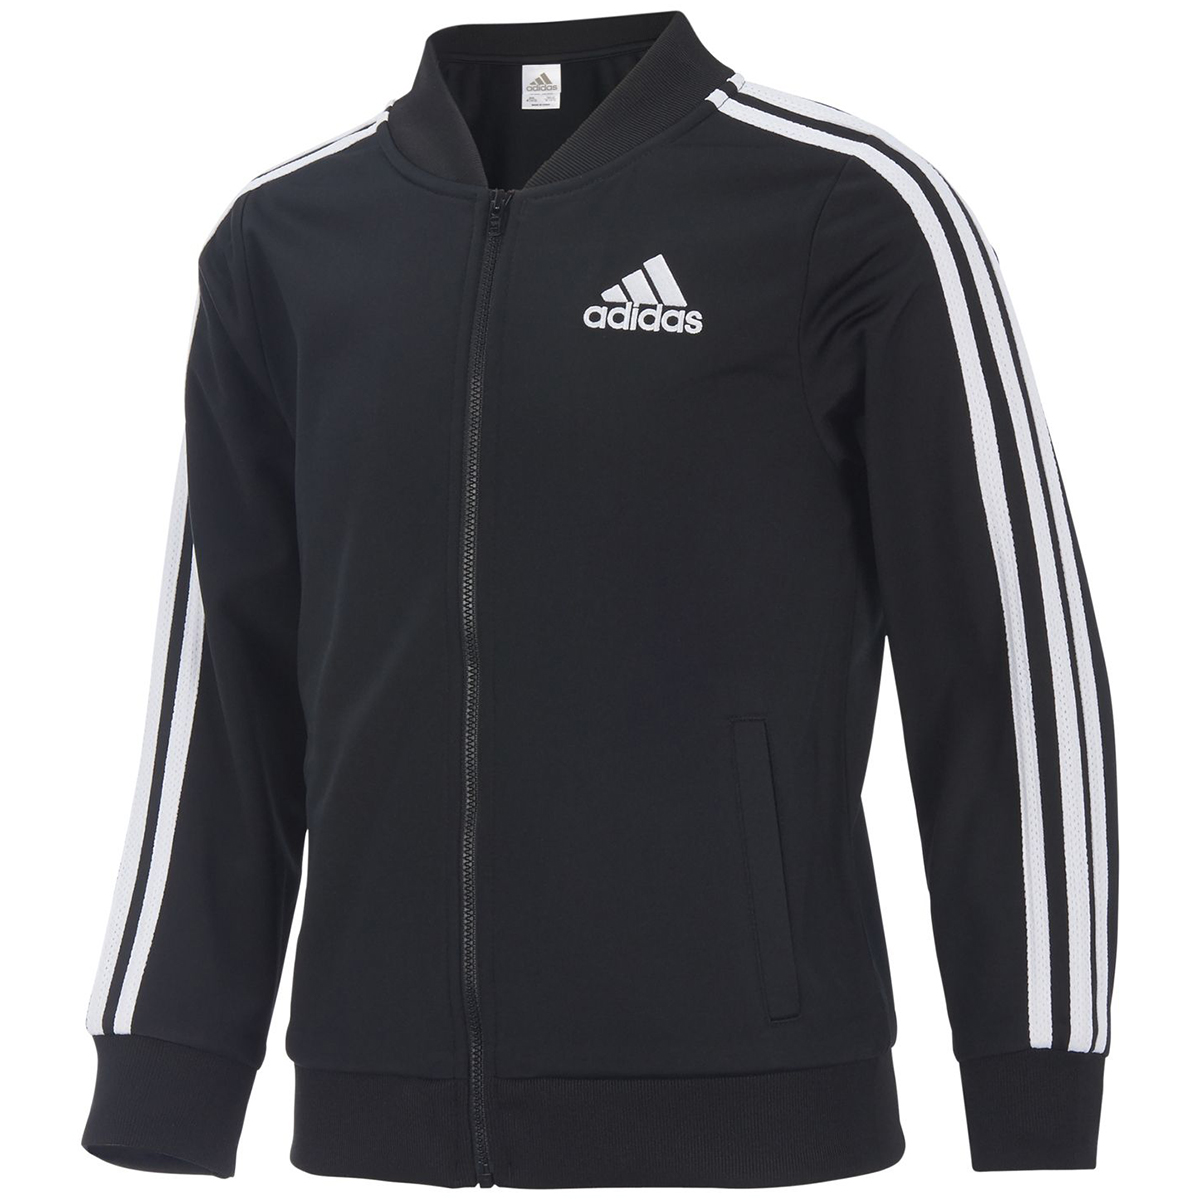 Adidas Big Girls' Tricot Bomber Jacket - Black, L